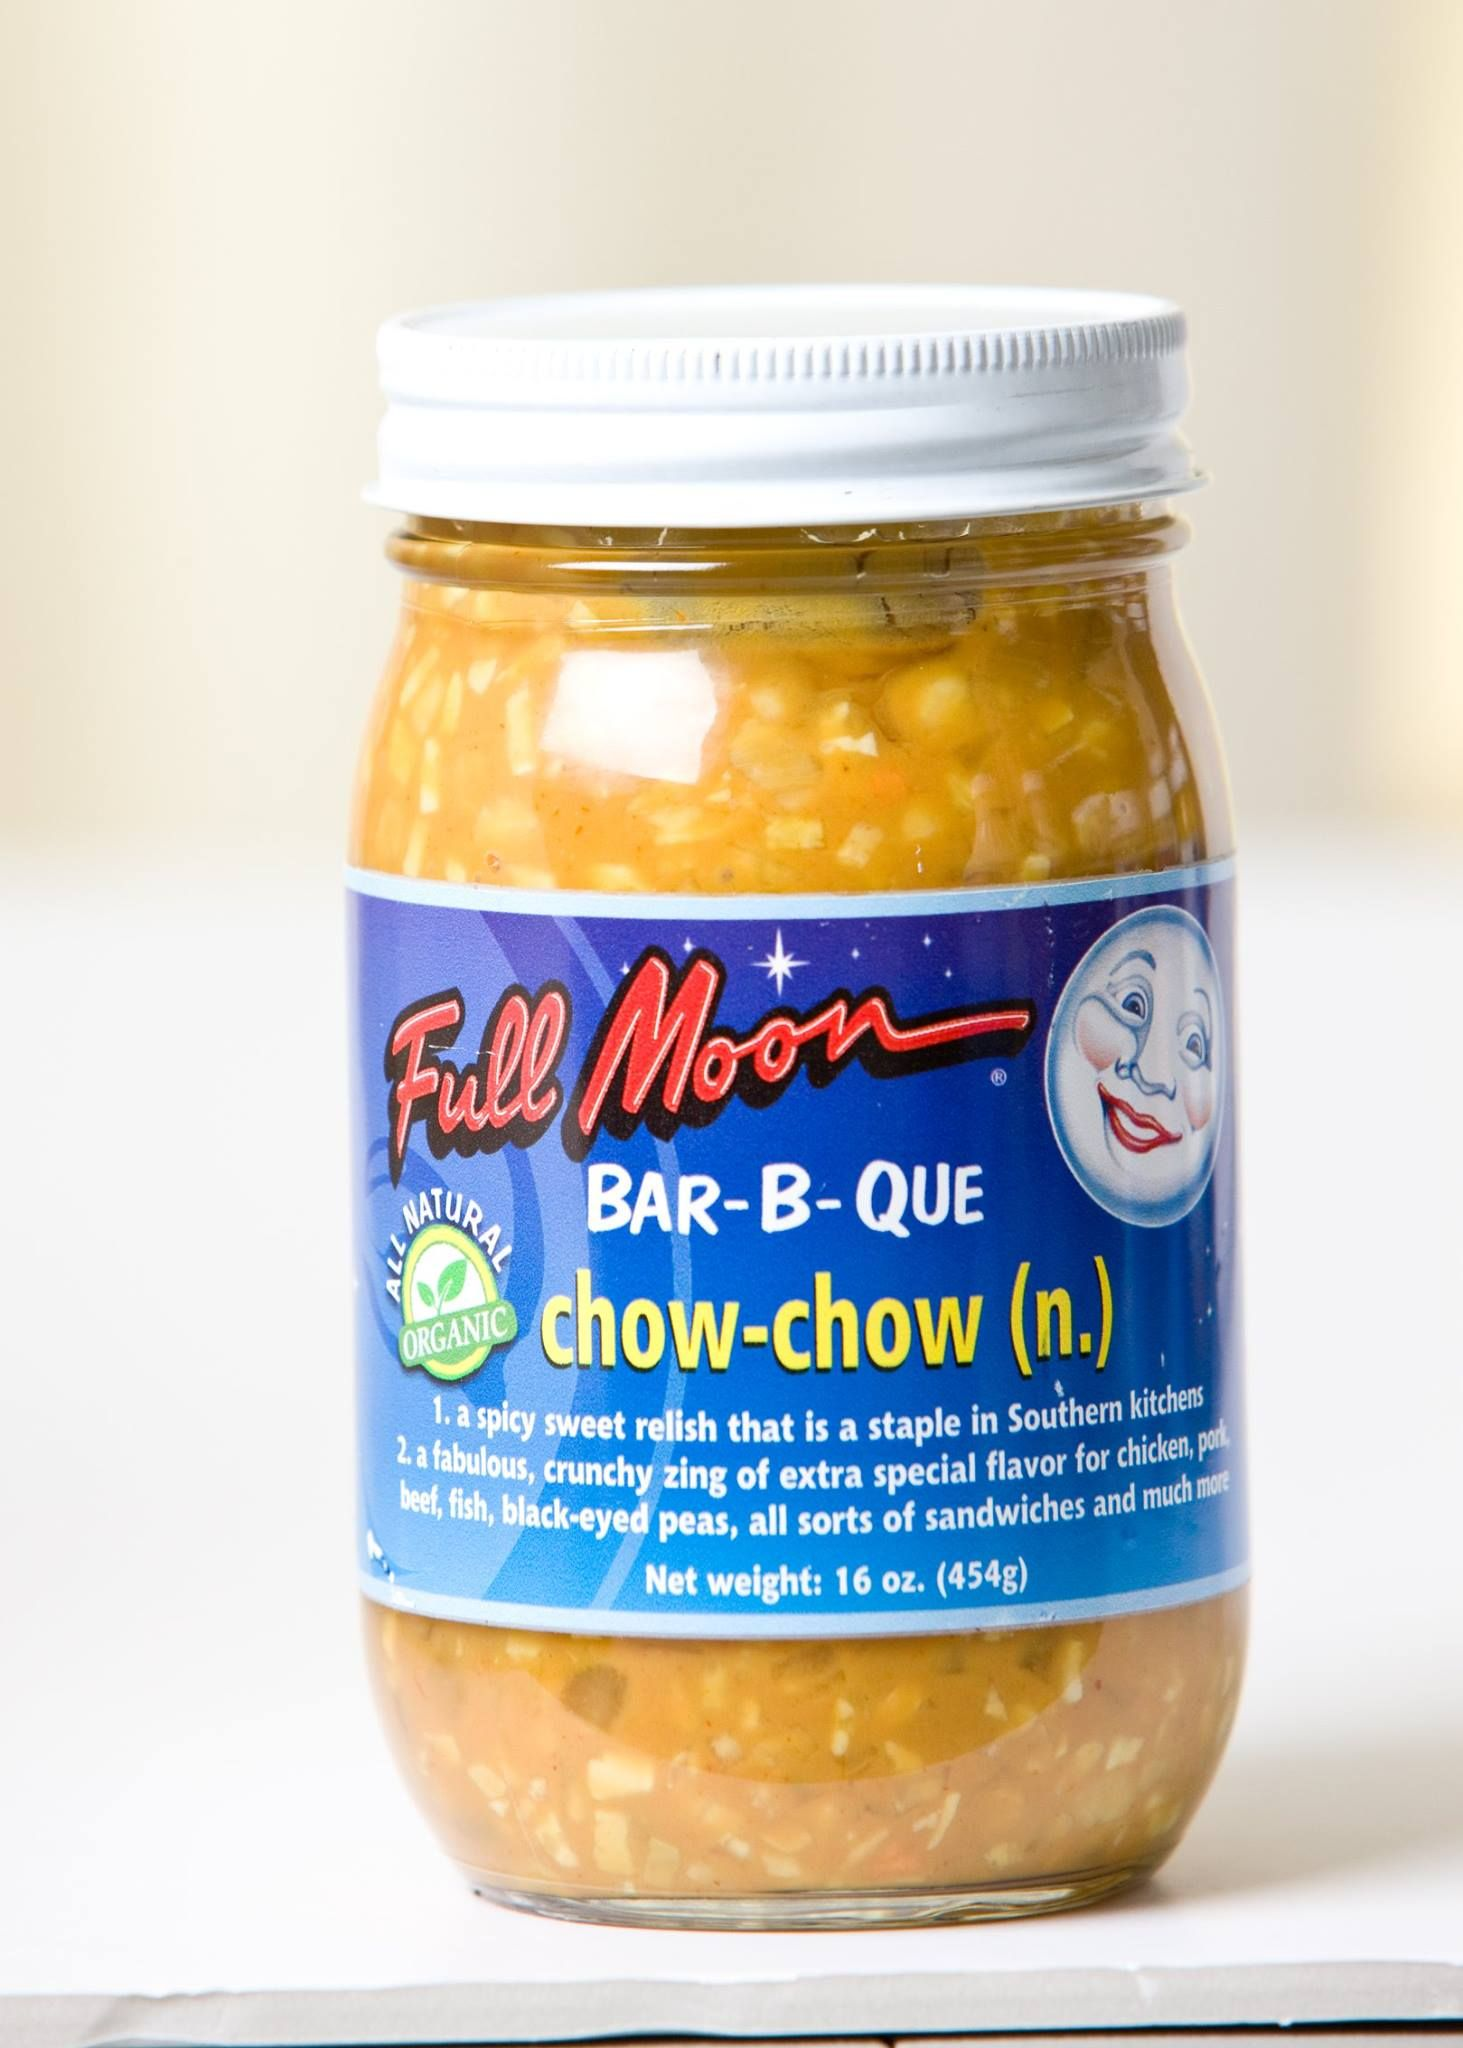 Chow Chow N 1 A Spicy Sweet Relish That Is A Staple In